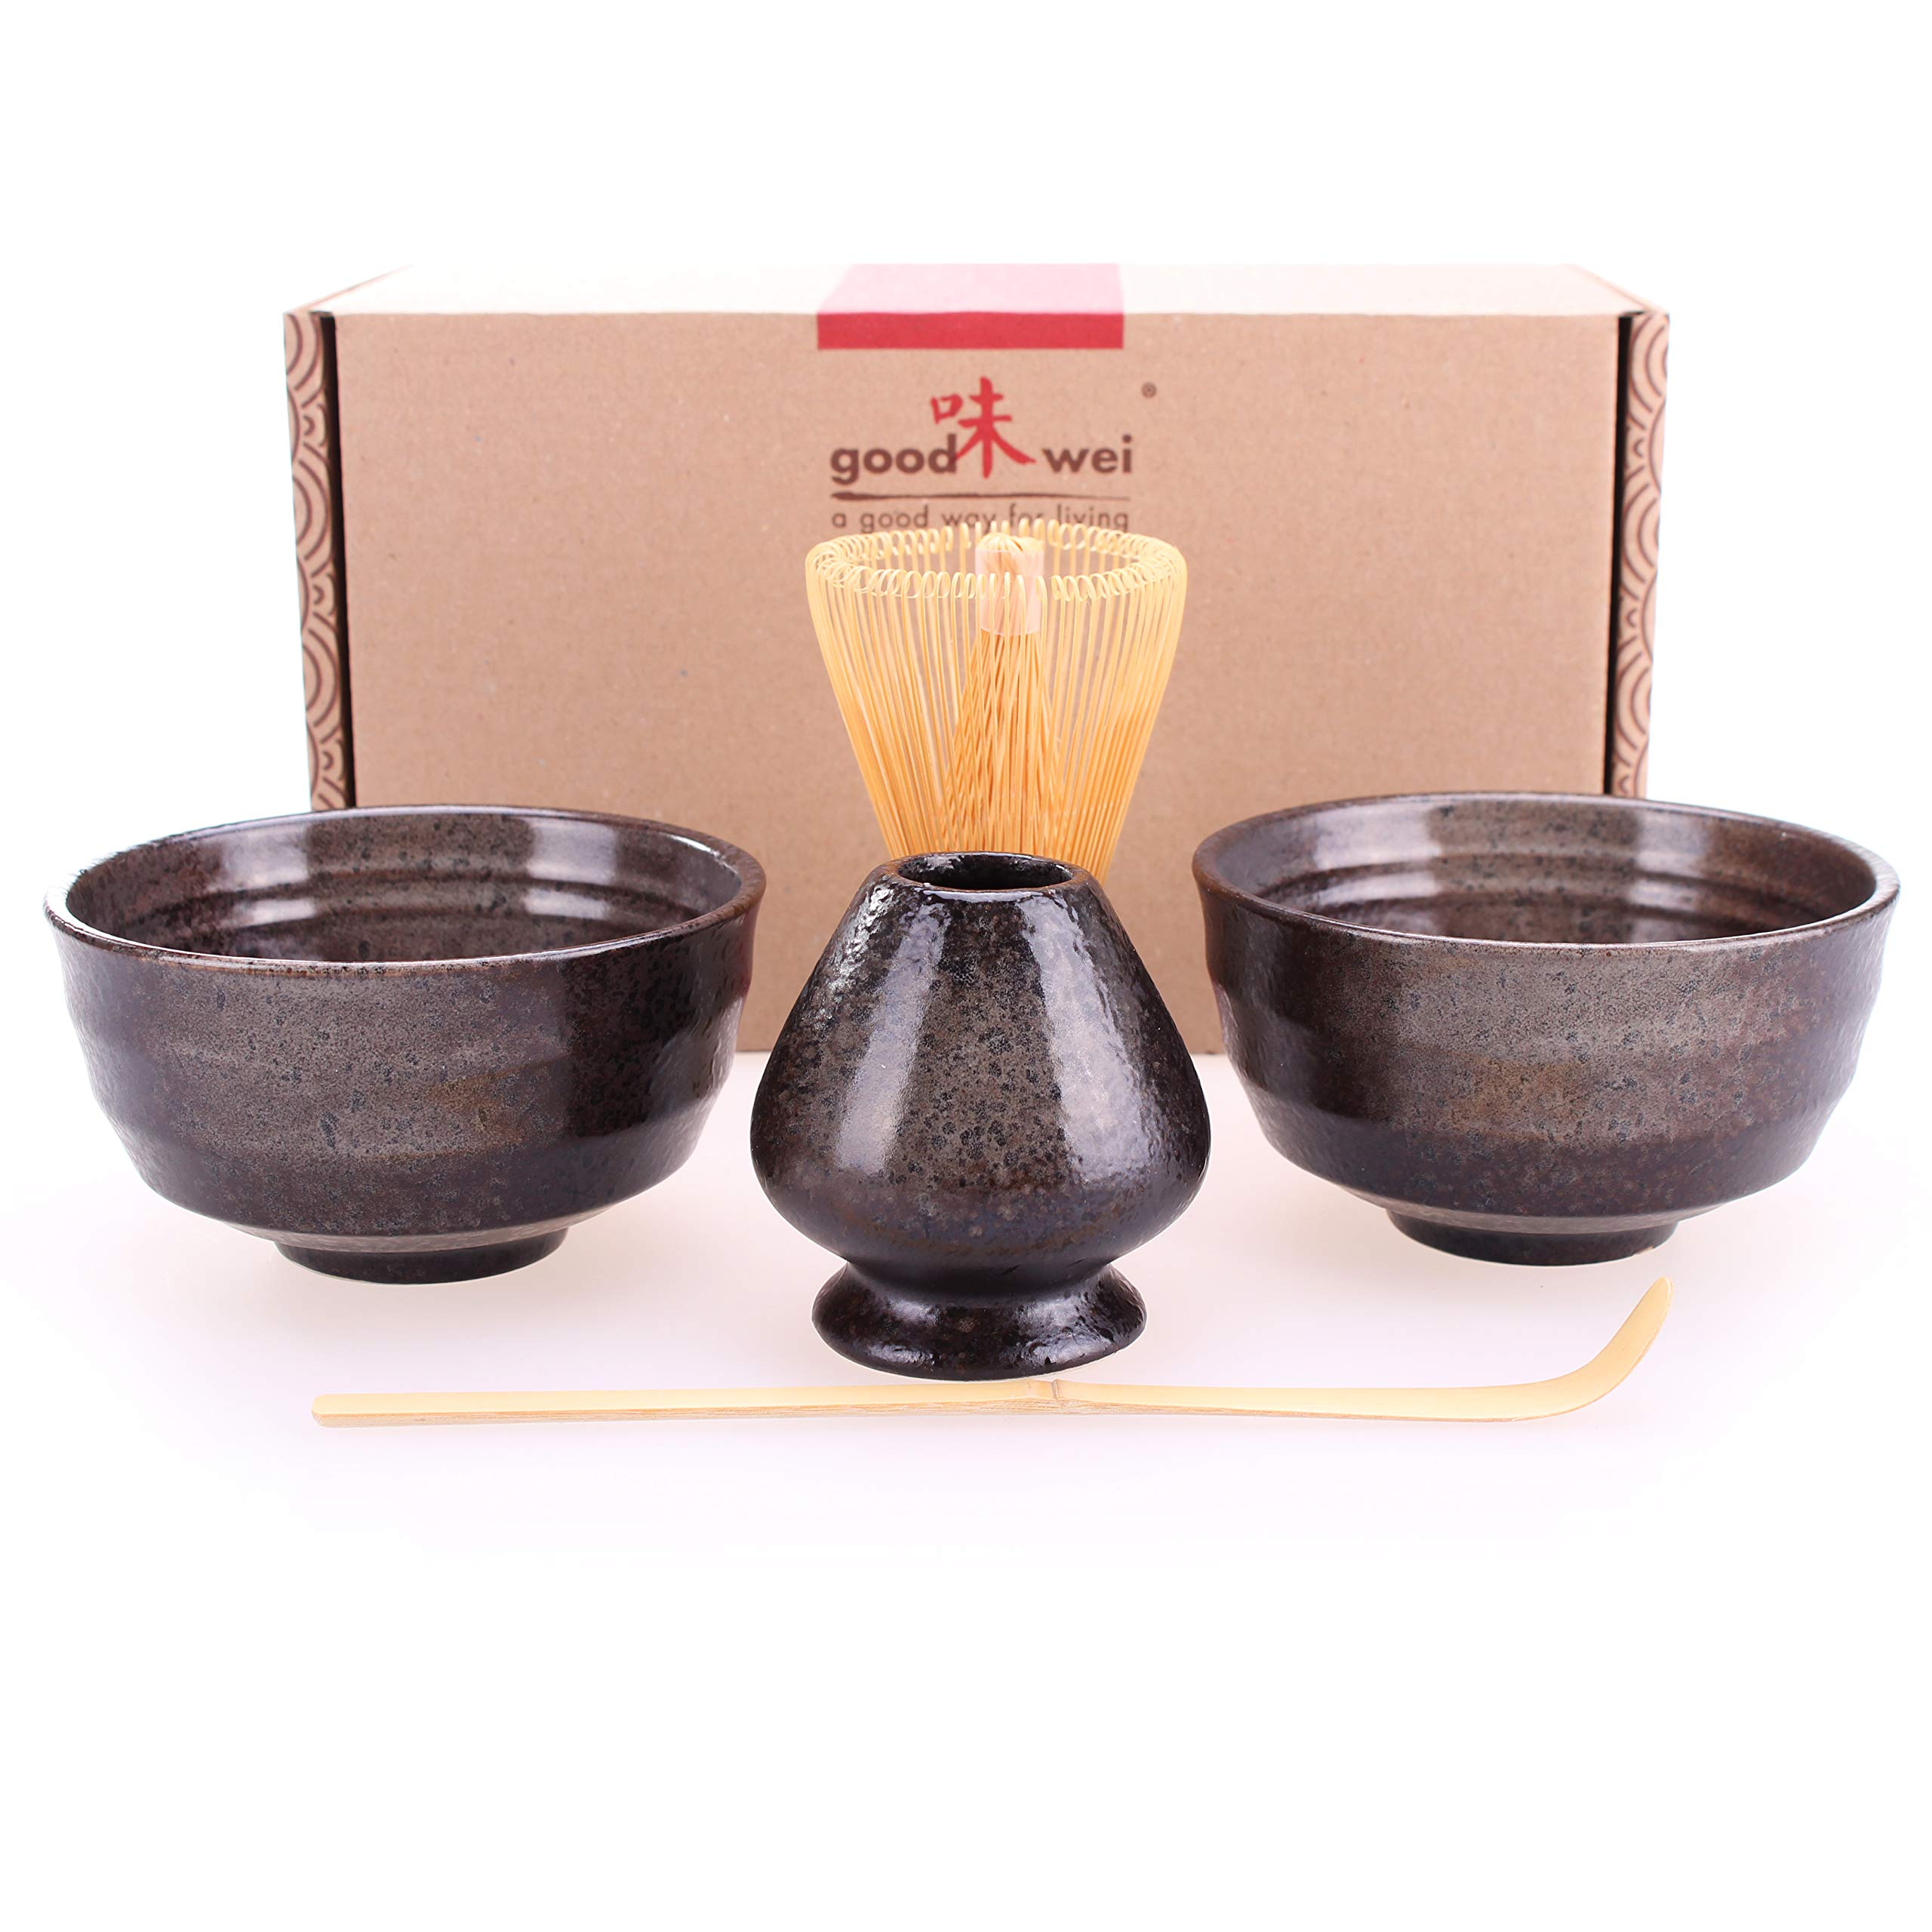 Goodwei Japanese Matcha Tea Ceremony Duo-Set for Two with Chasentate (Black)